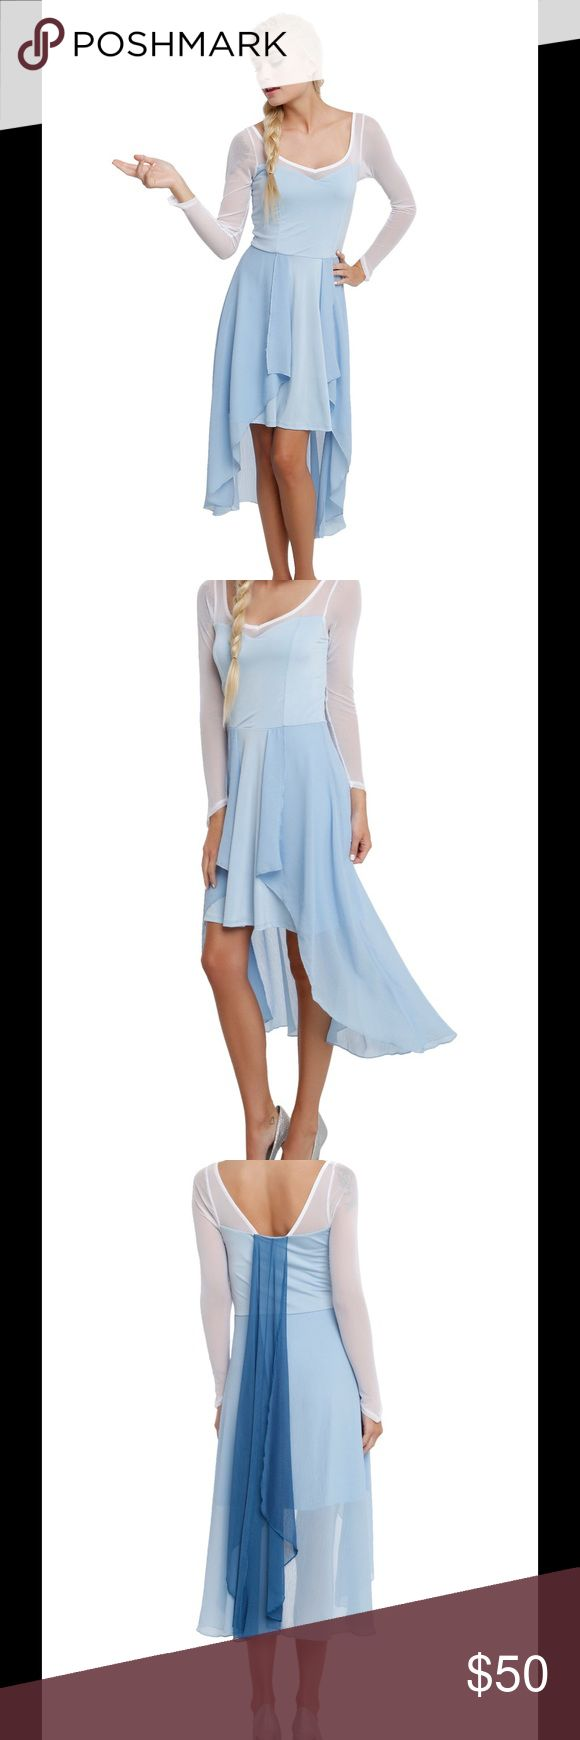 Hot Topic Blue Snow Queen Dress, M Frozen's Queen Elsa high low dress. Perfect for a costume or casual wear! NWT. Hot Topic Dresses High Low